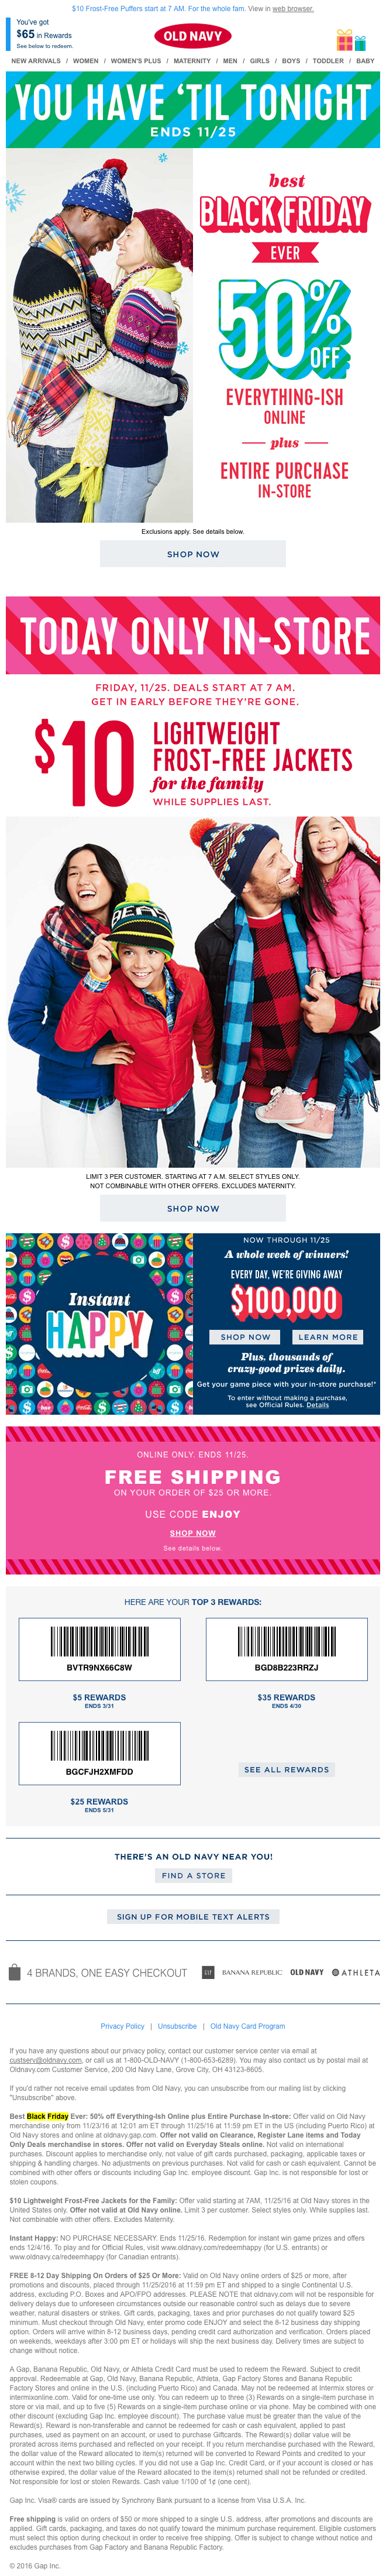 Old Navy Black Friday Email